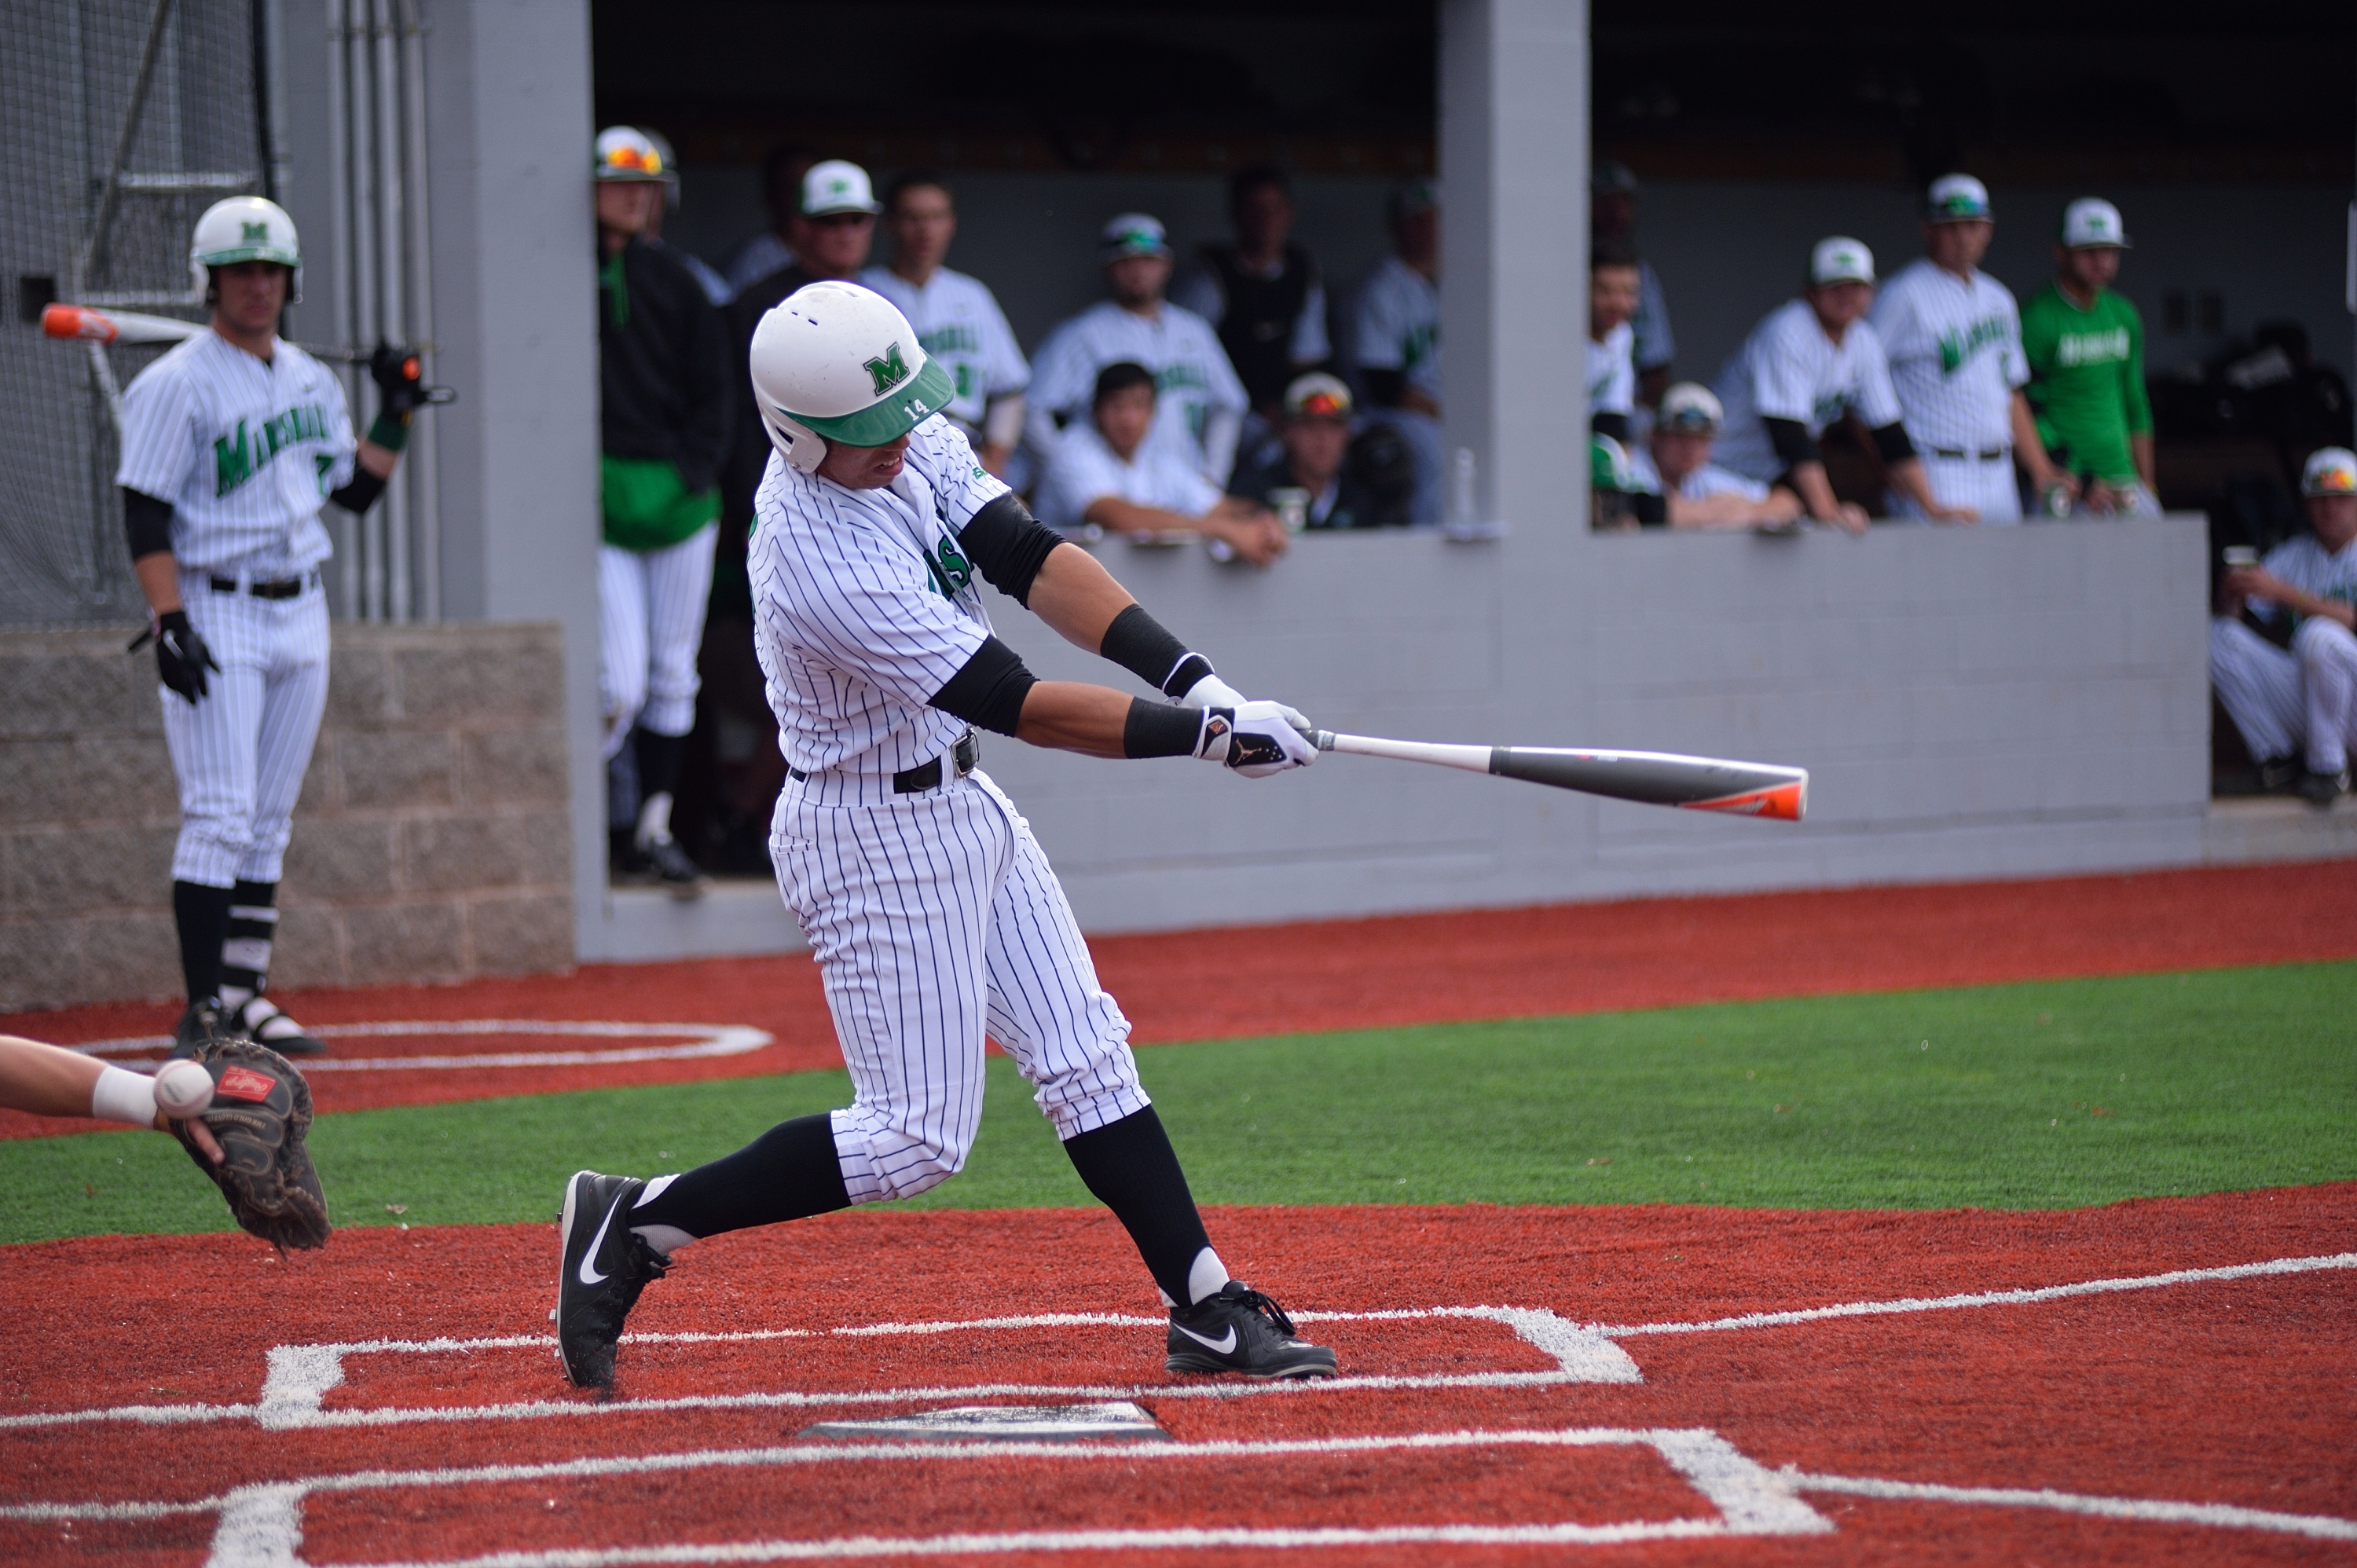 Junior Andrew Dundon went 2-for-3 in the contest